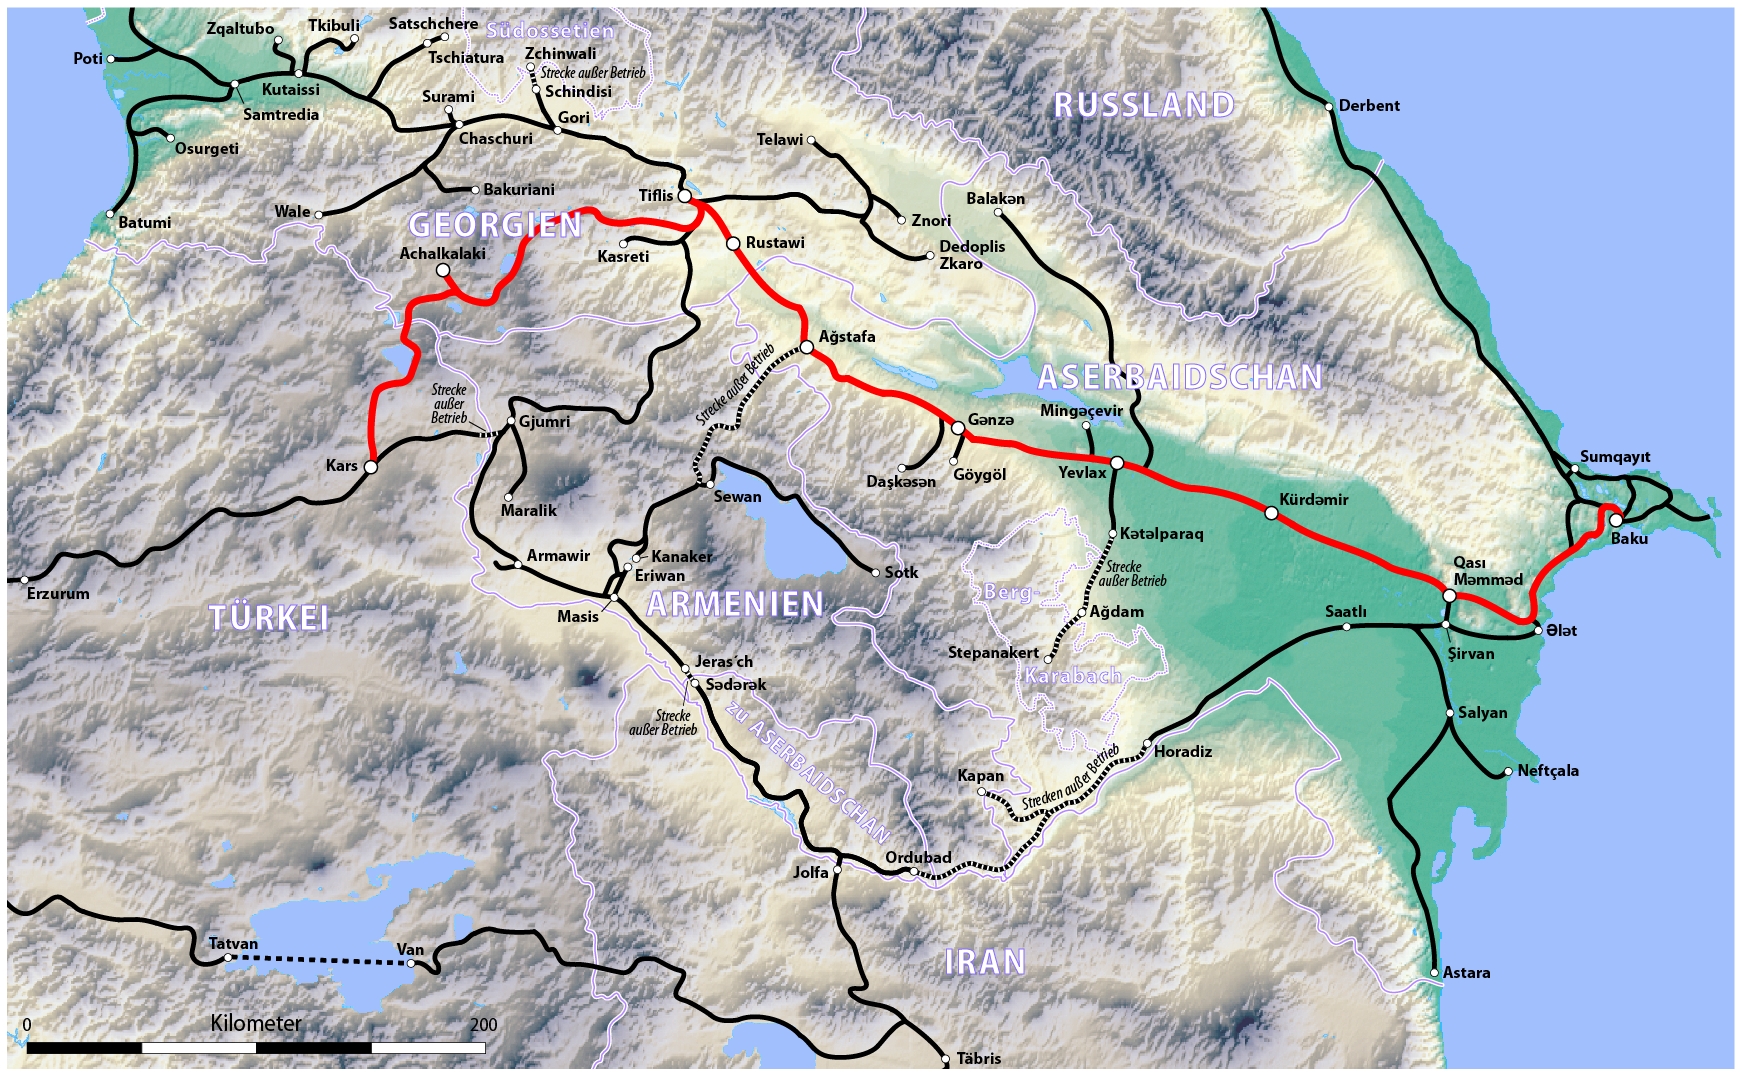 georgia caucasus map with Index on Anatolia Map likewise Silkroad Tour 3 additionally N051119a additionally S06 Russia further Georgia Map.